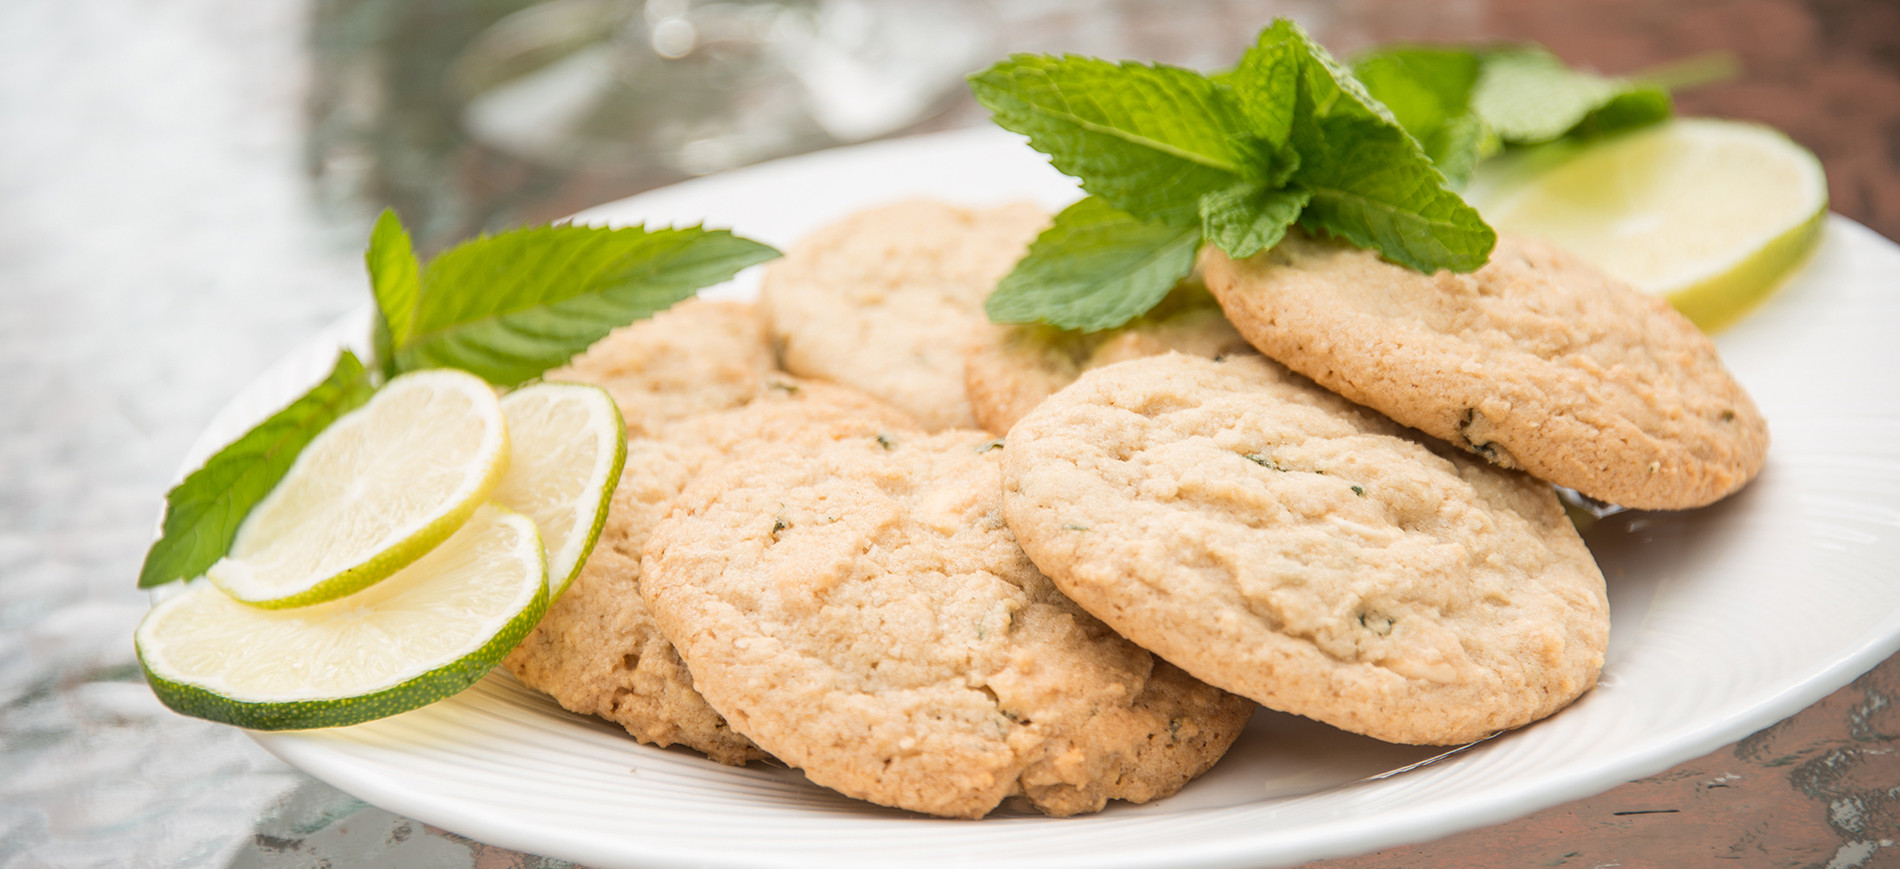 Mojitoo Cookies on white plate with mint & lime slice garnish